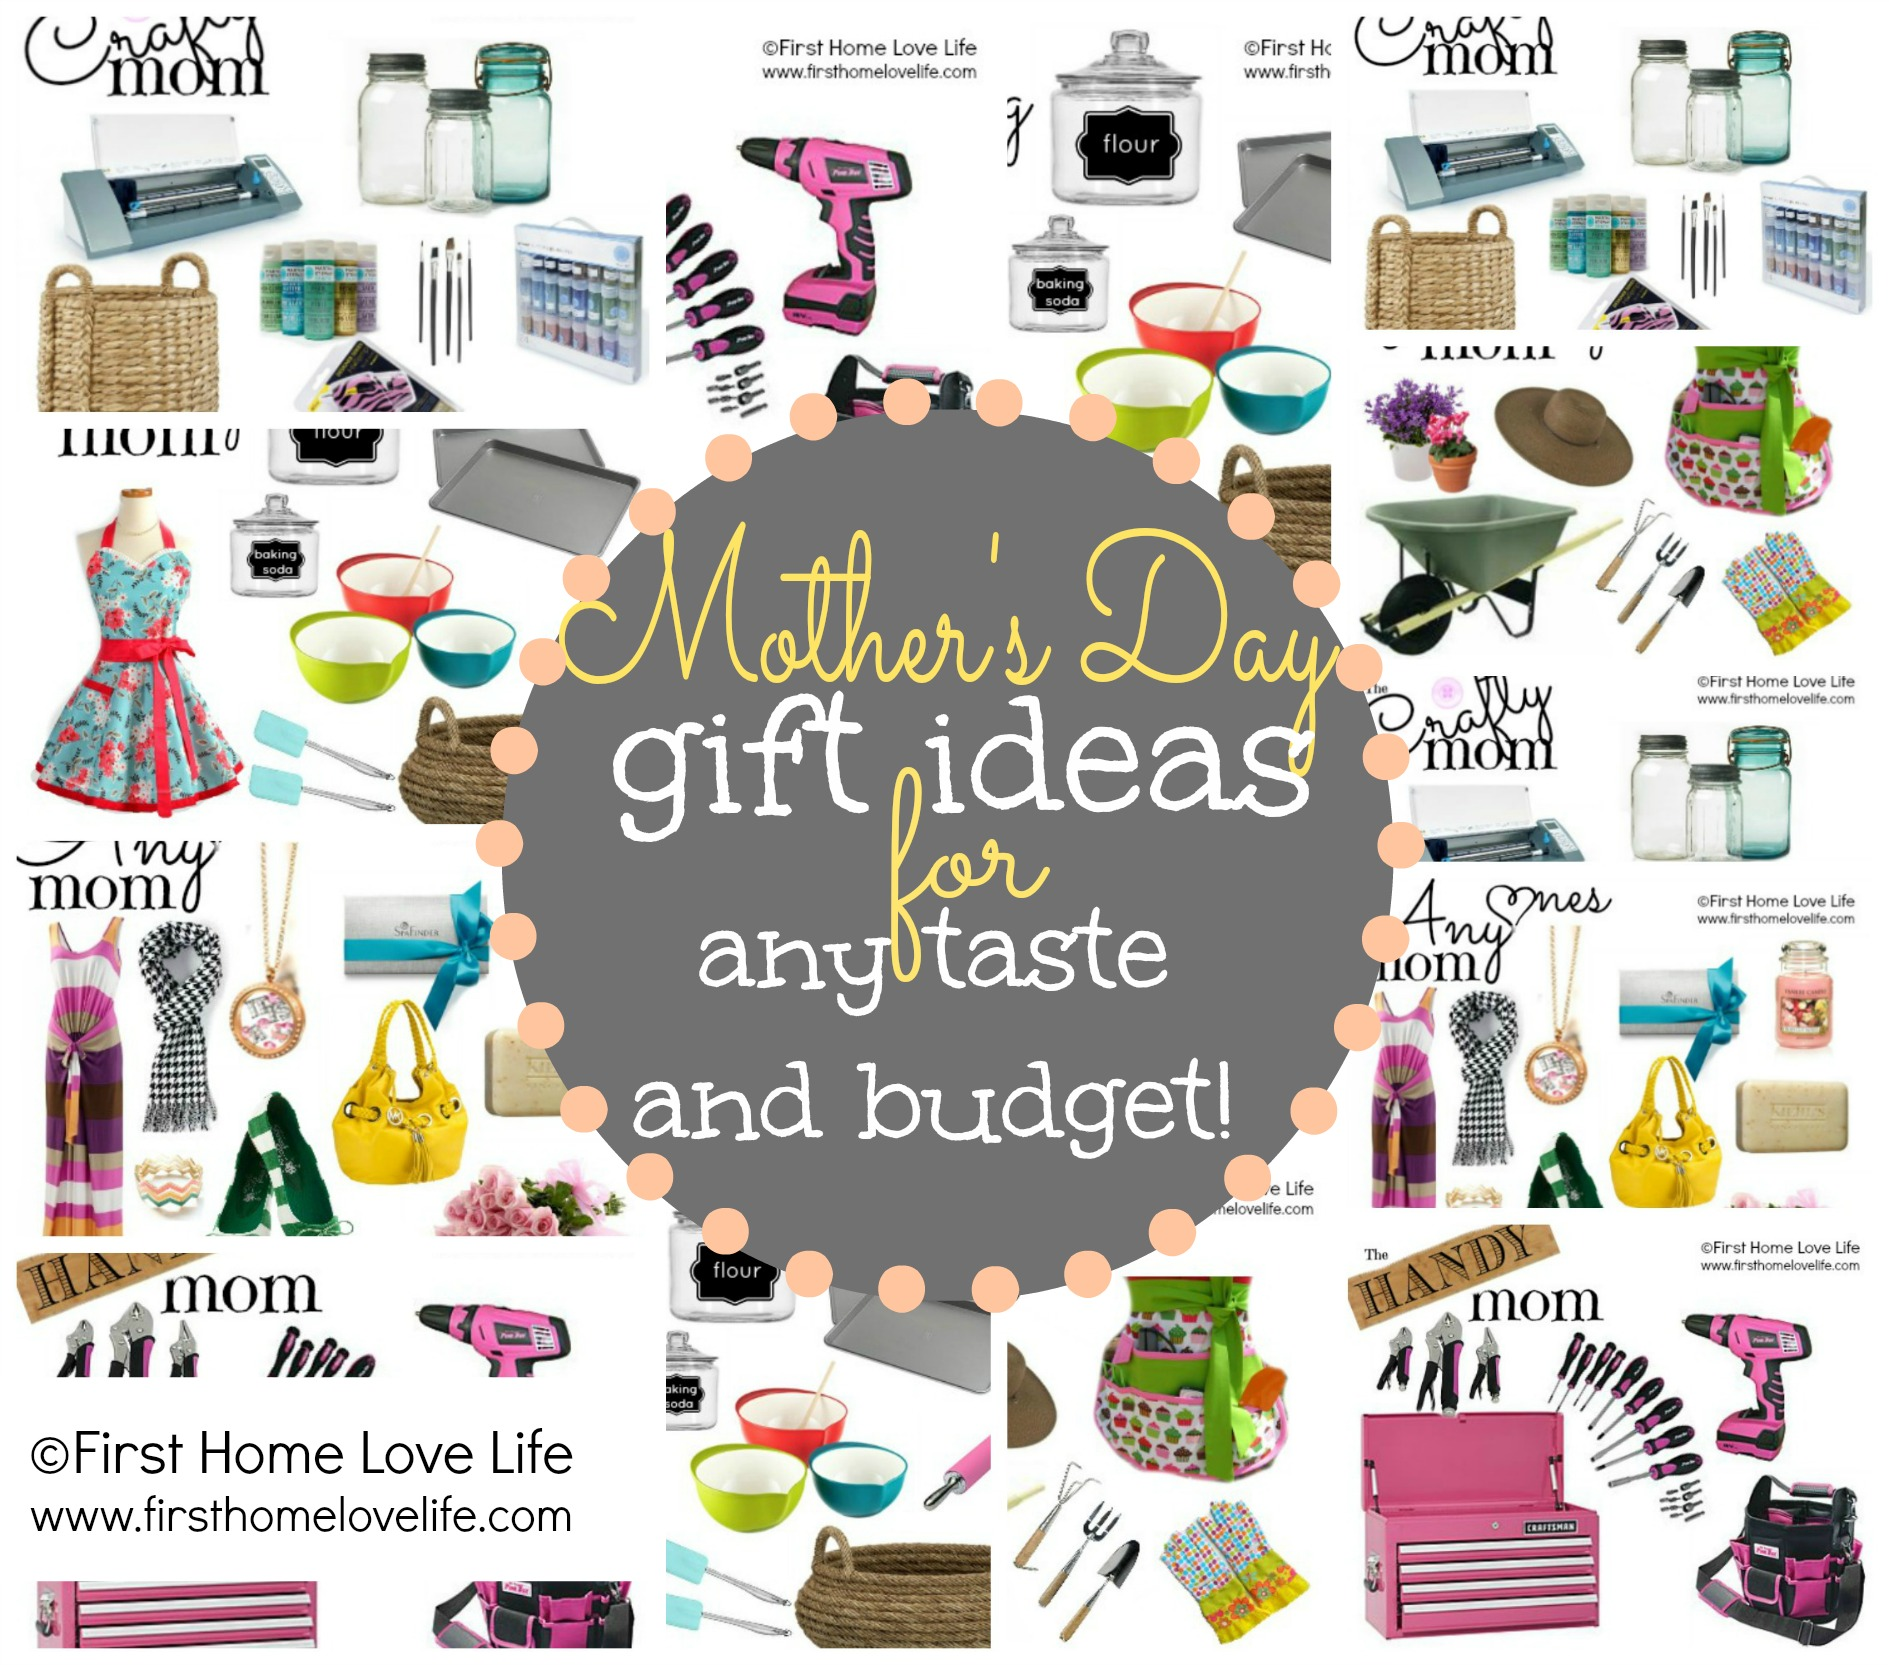 mother's day gift ideas - first home love life